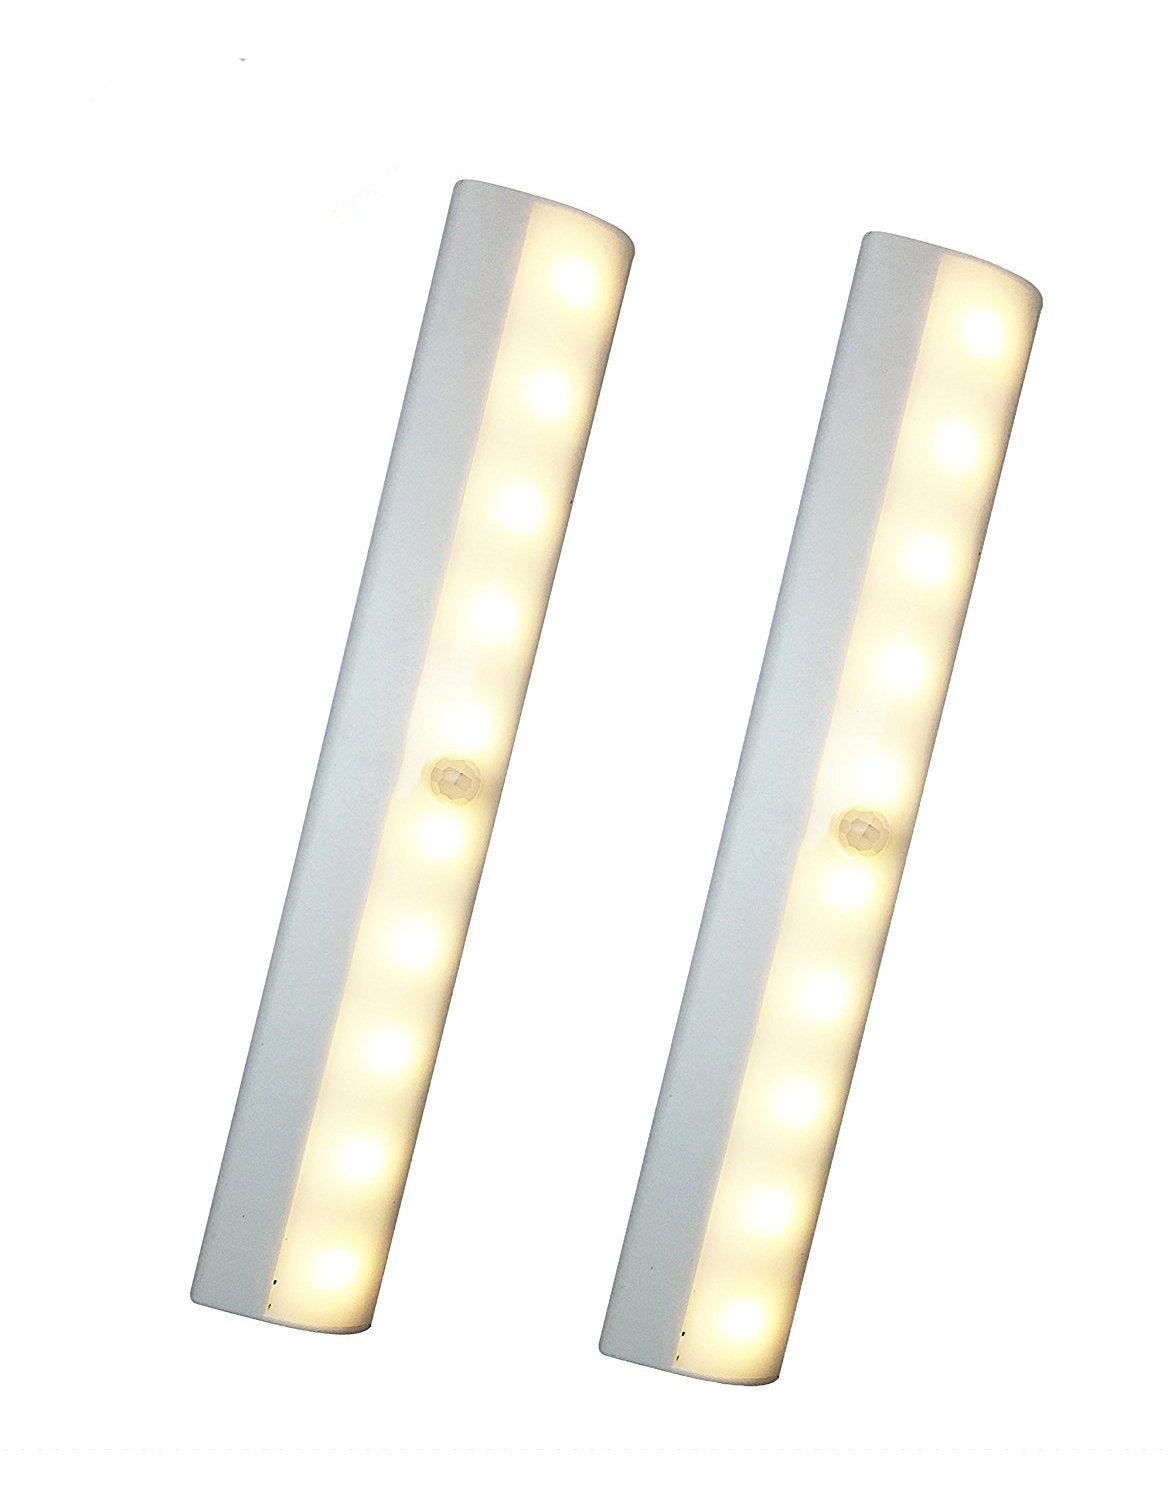 JJMG 10 LED Motion Sensing Closet Light (2-Pack)